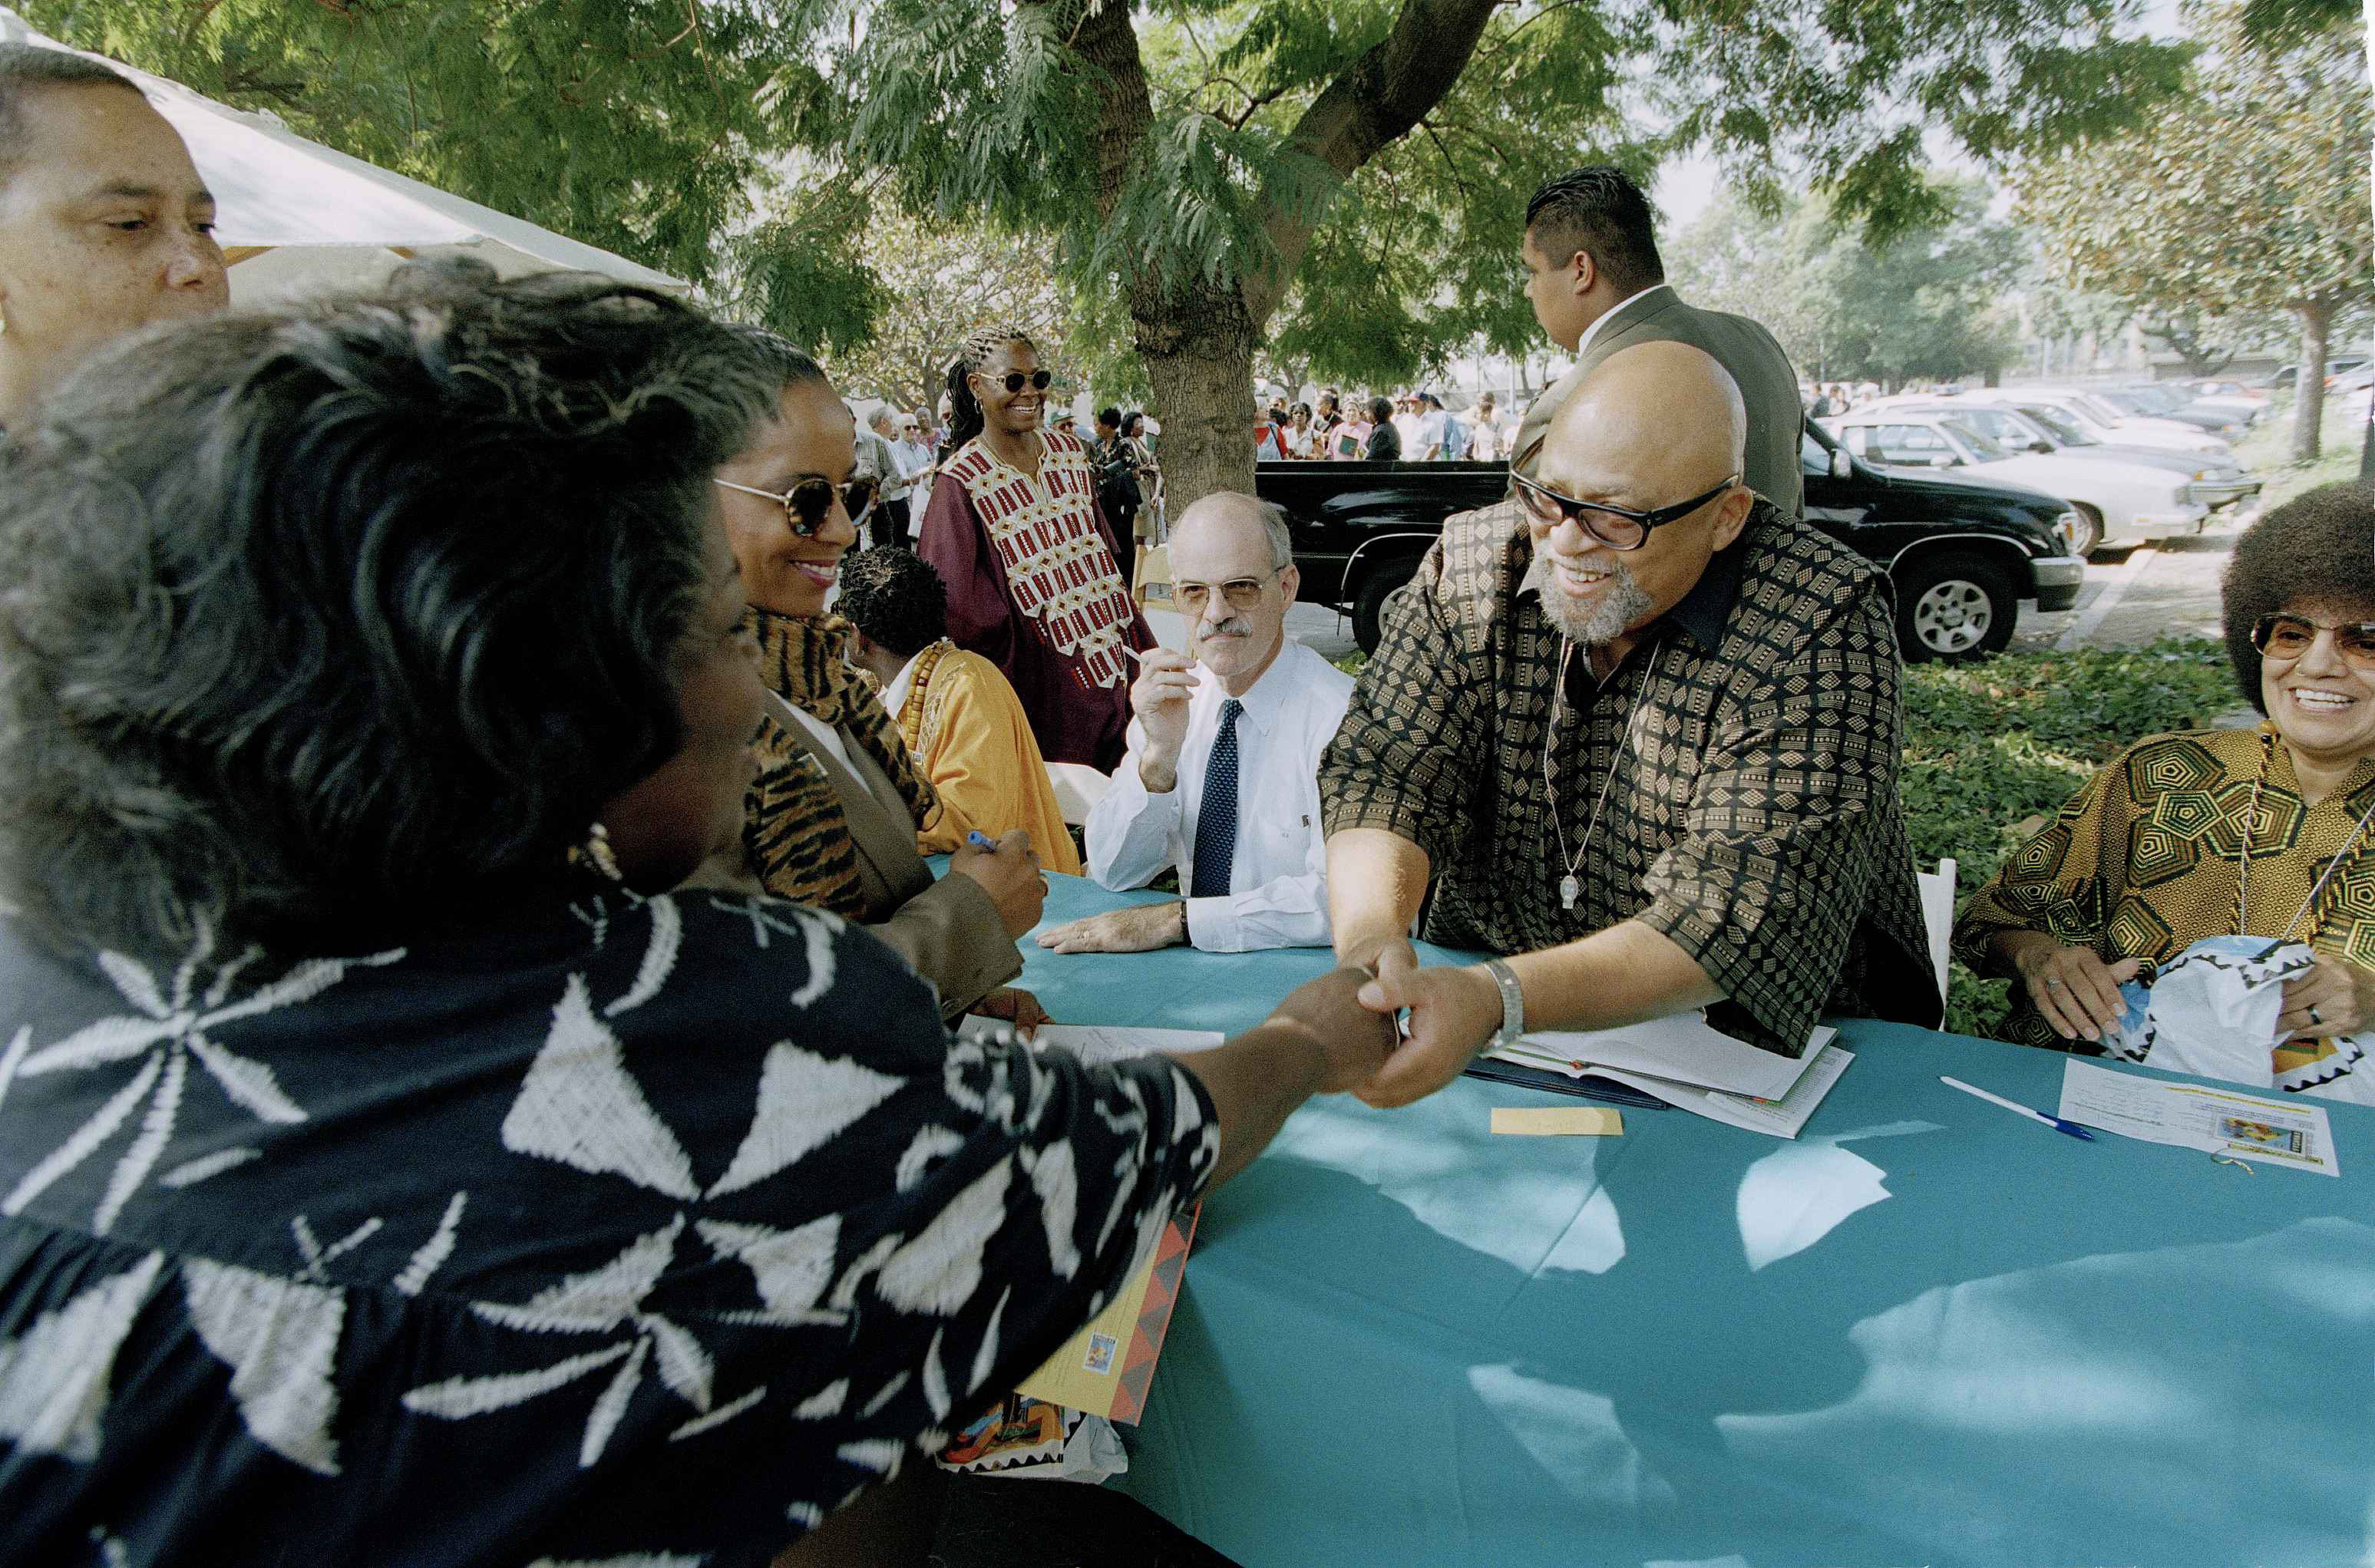 """Dr. Maulana Karenga, left, greets well-wishers during the """"First Day of Issuance"""" dedication ceremony for the U.S. Postal Service's first-ever Kwanzaa stamp, in Los Angeles, Oct. 22, 1997. The stamp, designed by artist Syntia Saint James, commemorates the popular African American festival of family, community and culture, created by Dr. Karenga. (AP Photo/Reed Saxon)"""